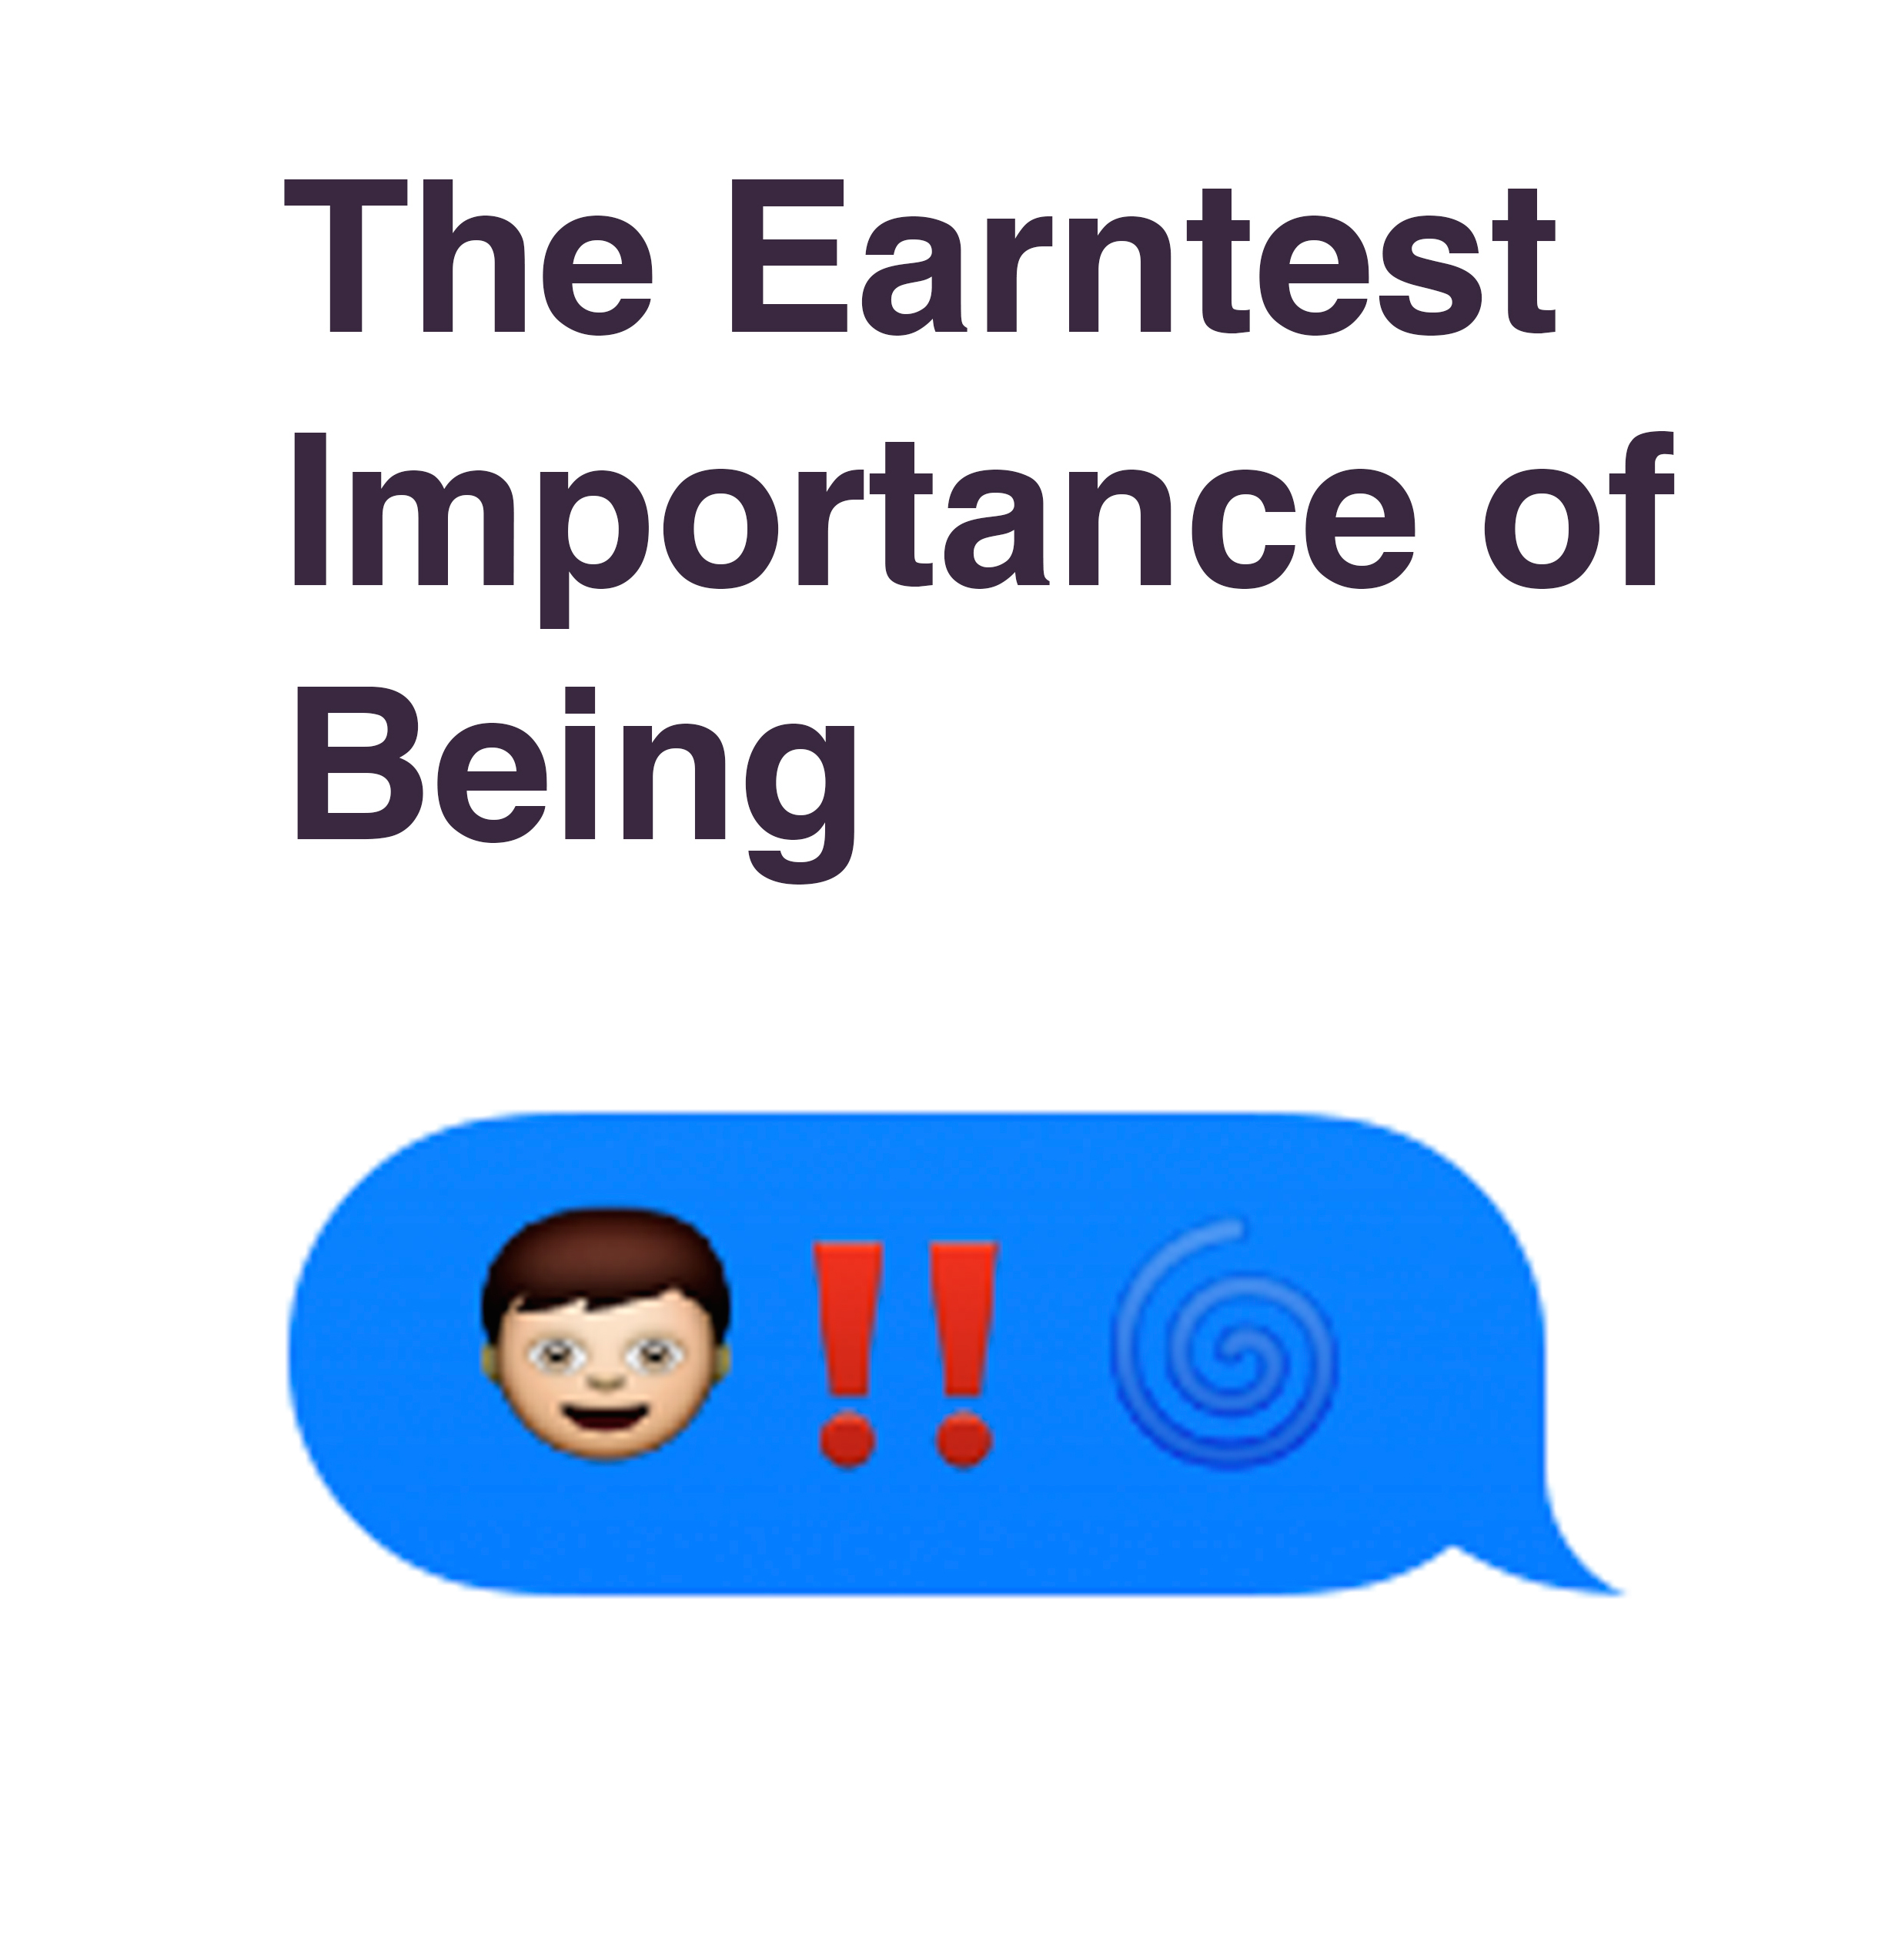 The Earnest Importance of Being